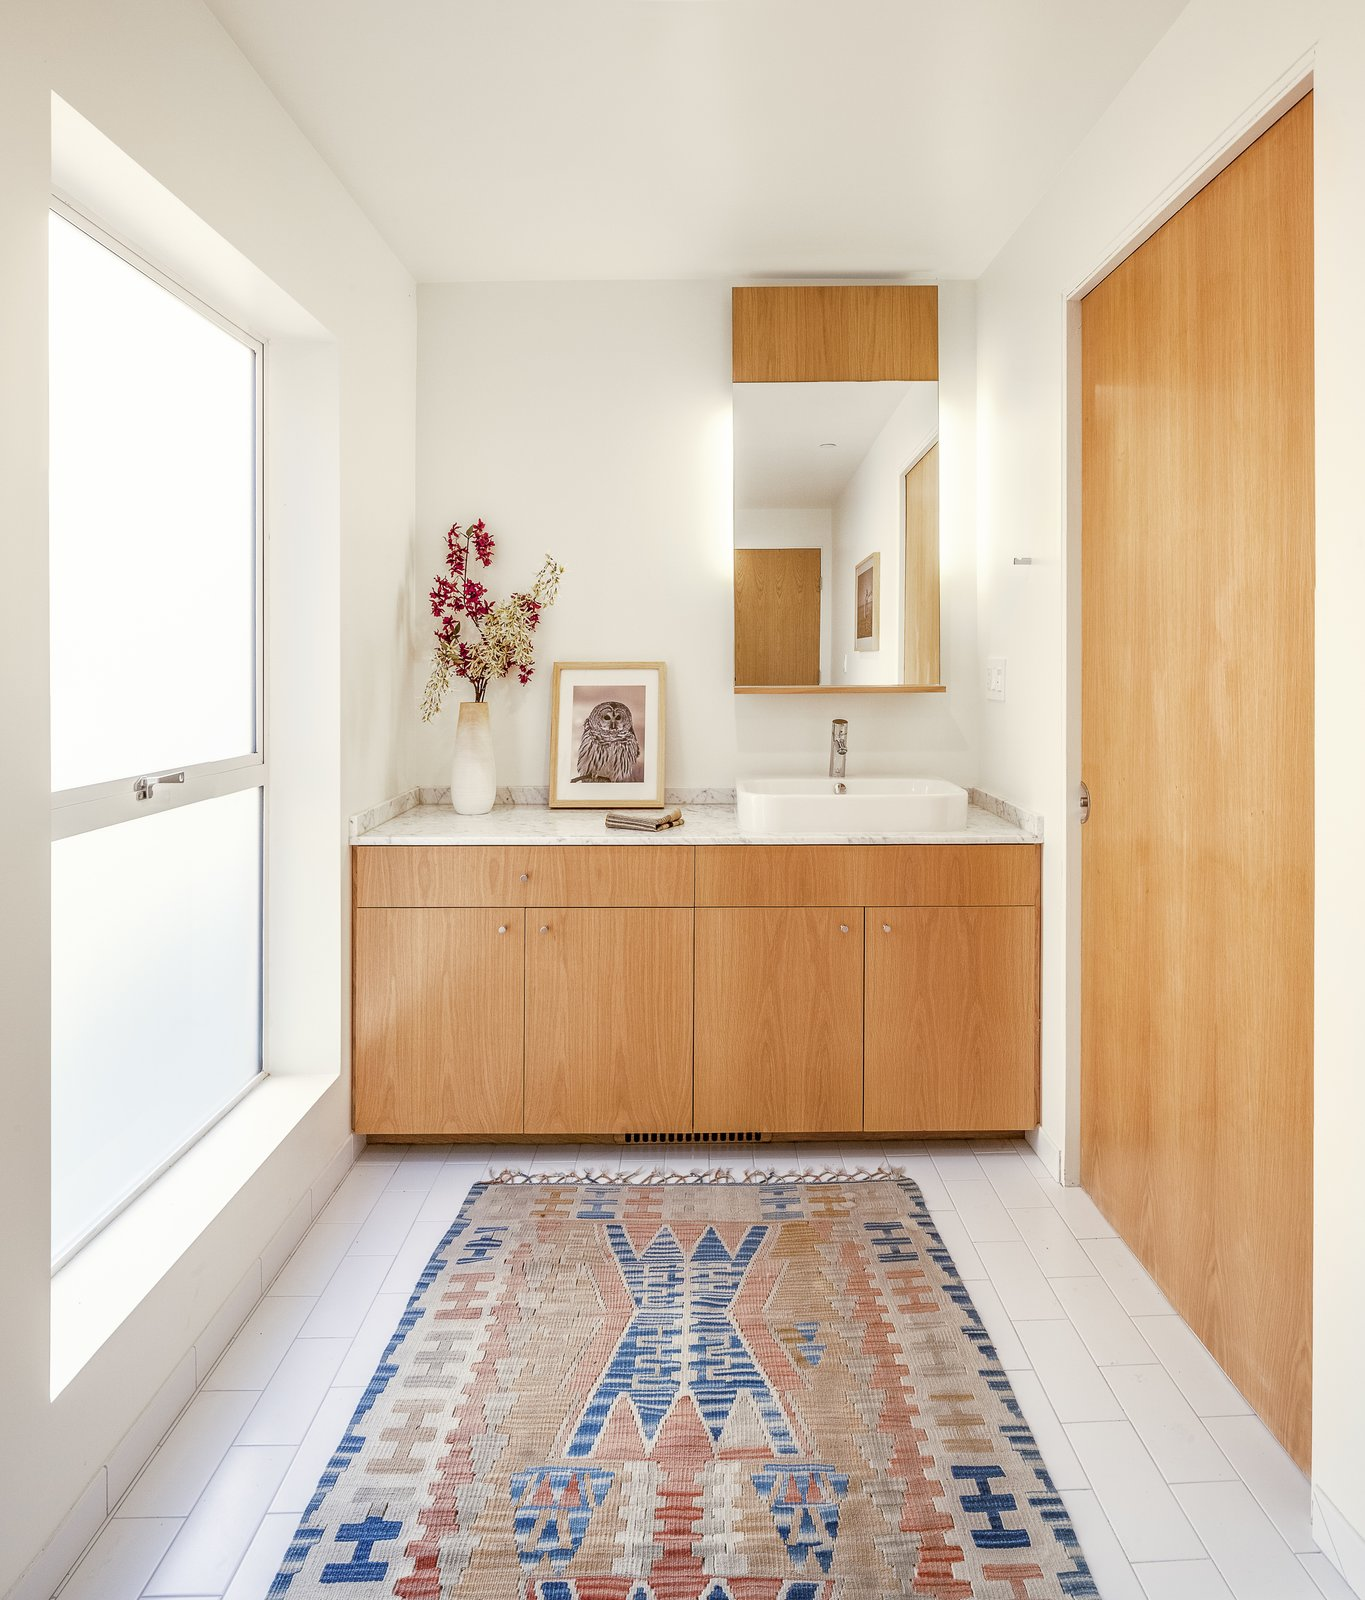 The architect has a track record of stripping away elements of excess to create simple, livable, and well-lit spaces that feel larger than they are. This downstairs bathroom features a simple white ceramic tiles and a sliding white oak door.